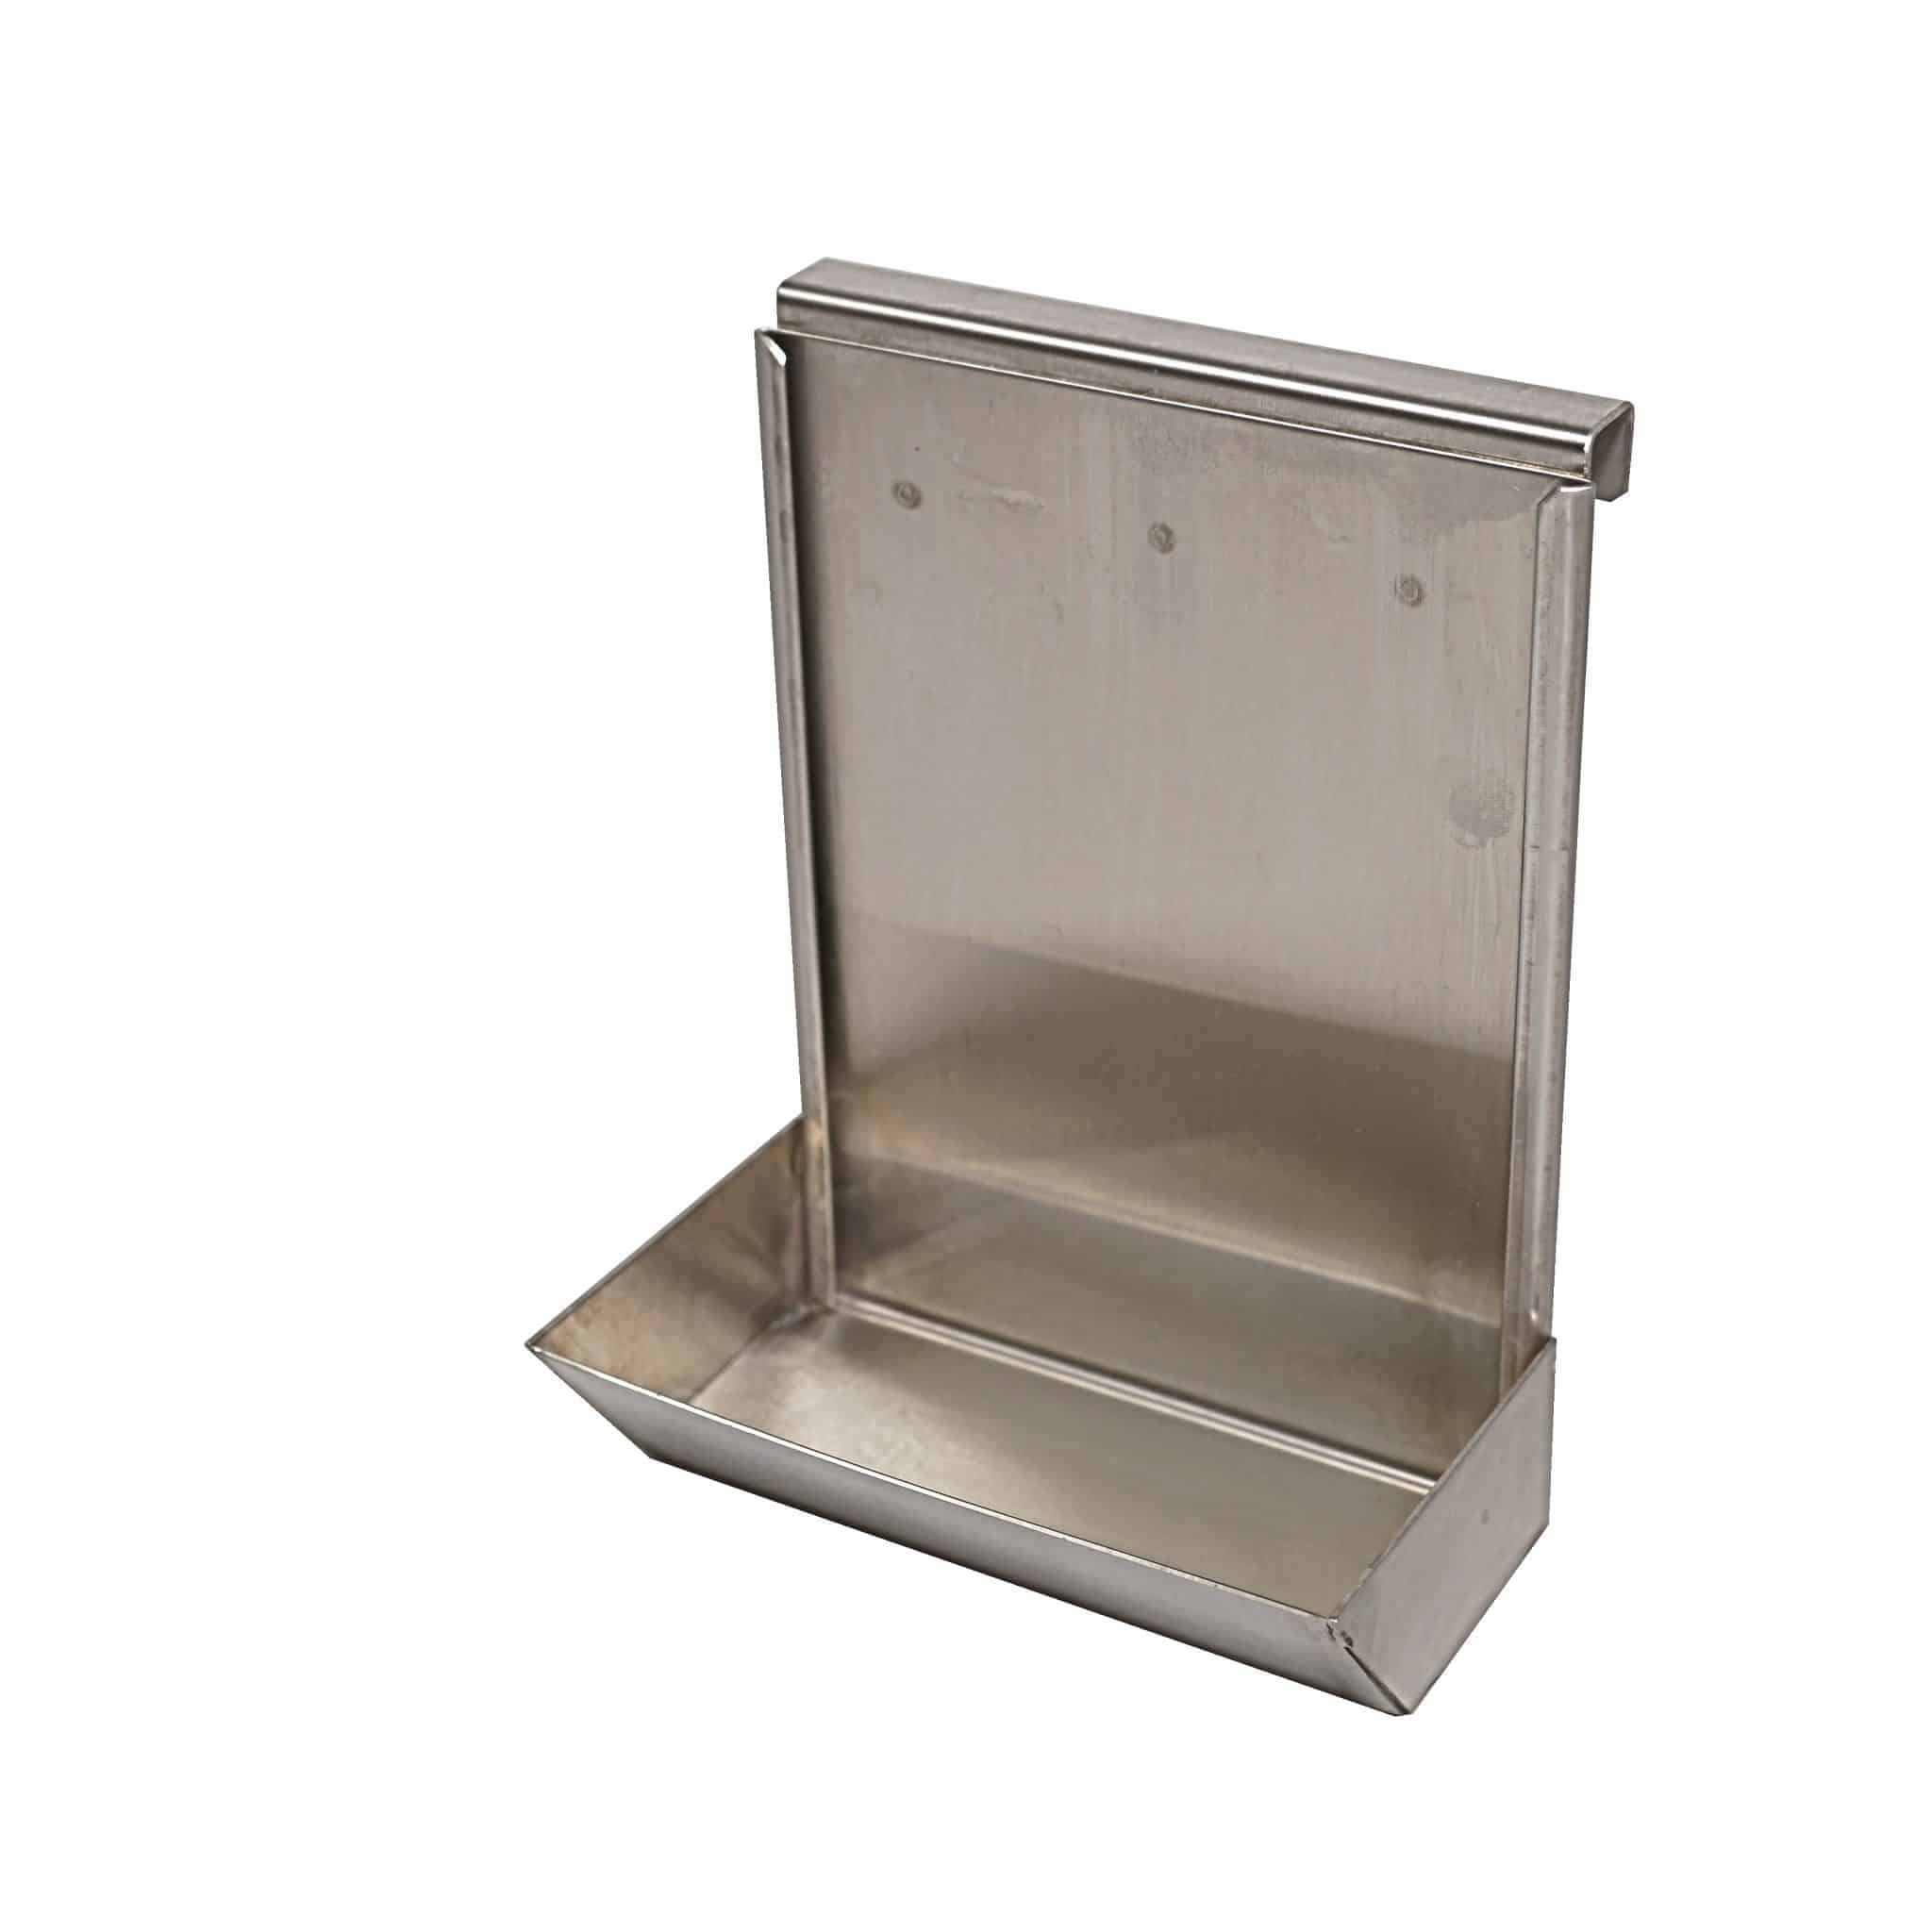 Poster holder with medicine tray